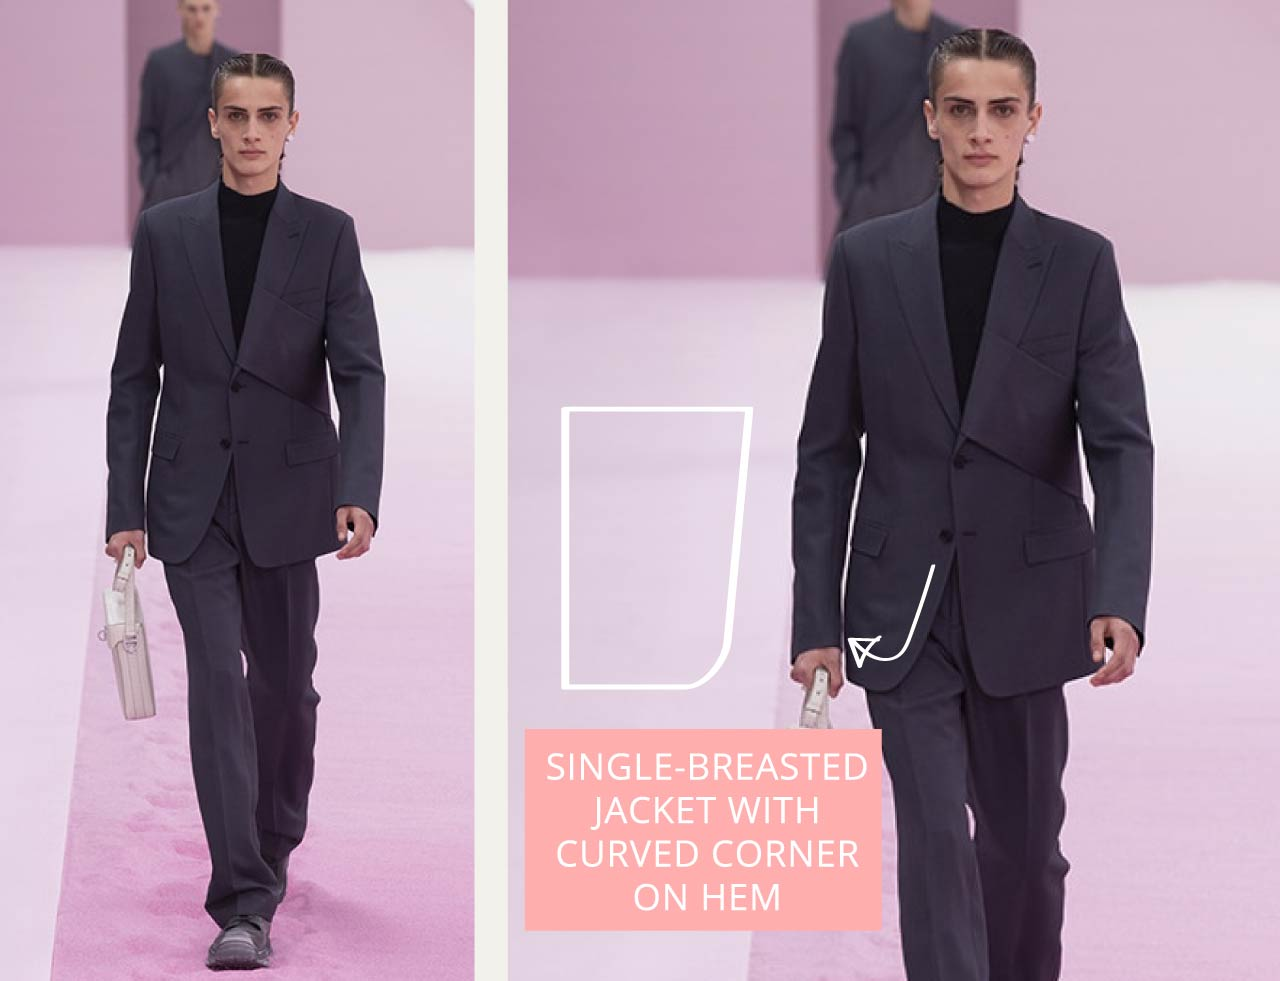 Tailored Jacket Hems - Straight or curved? | The Cutting Class. Dior Menswear SS20. Single-breasted suit jacket from creative director Kim Jones.